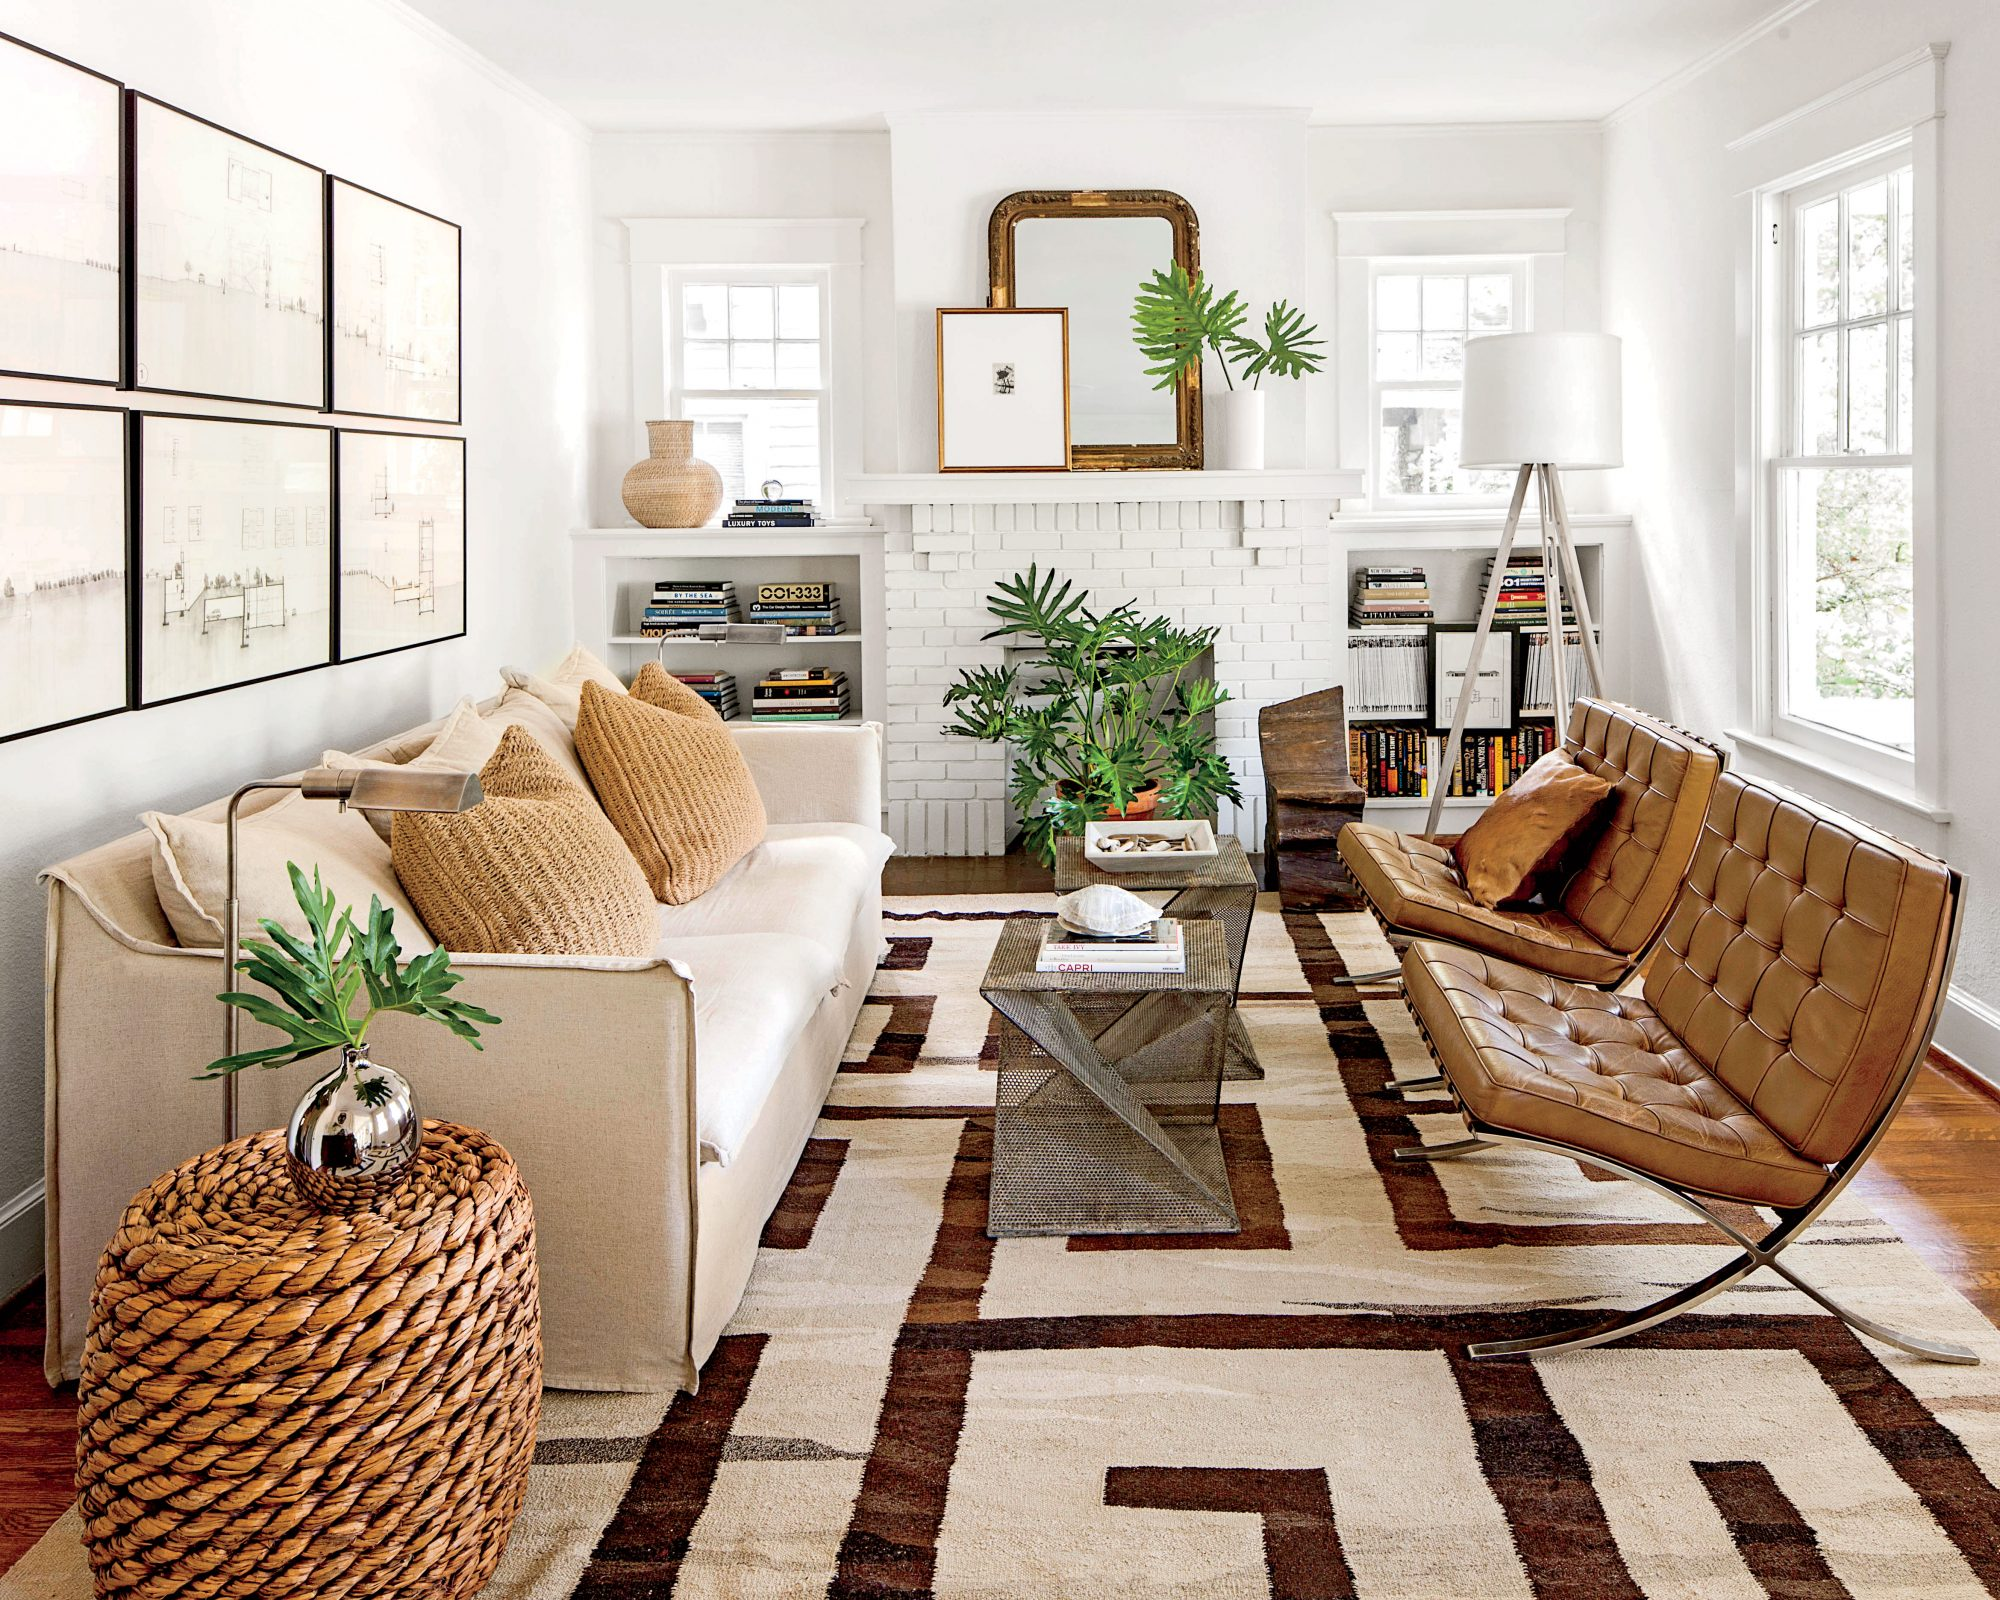 James Laughlin Birmingham Bungalow with White Walls and Meaningful Artwork